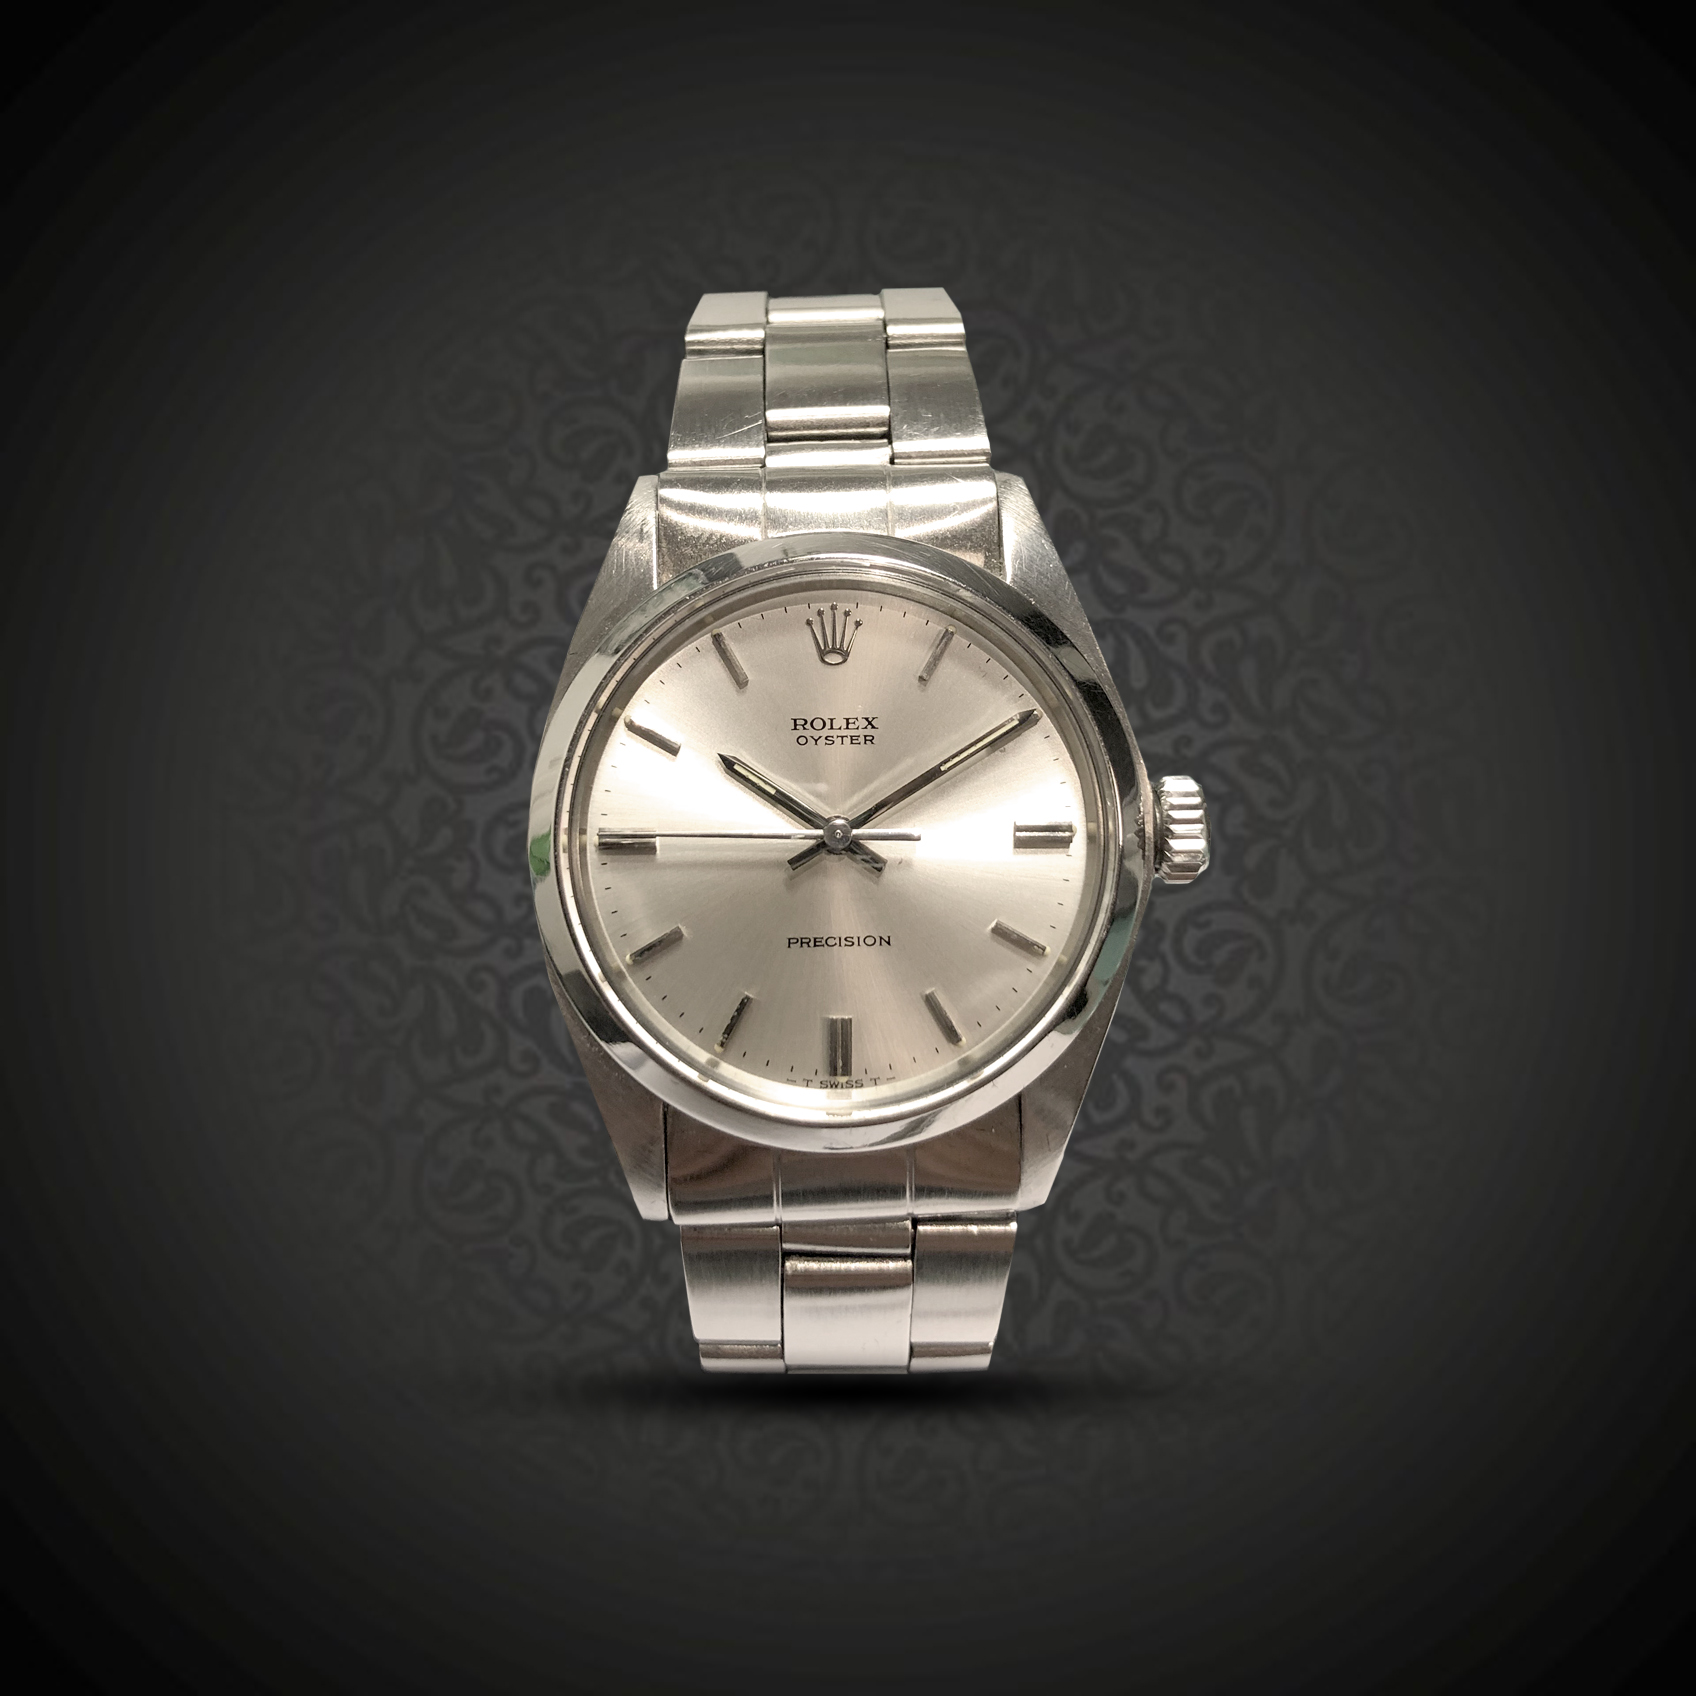 Preowned Rolex Oyster Precision